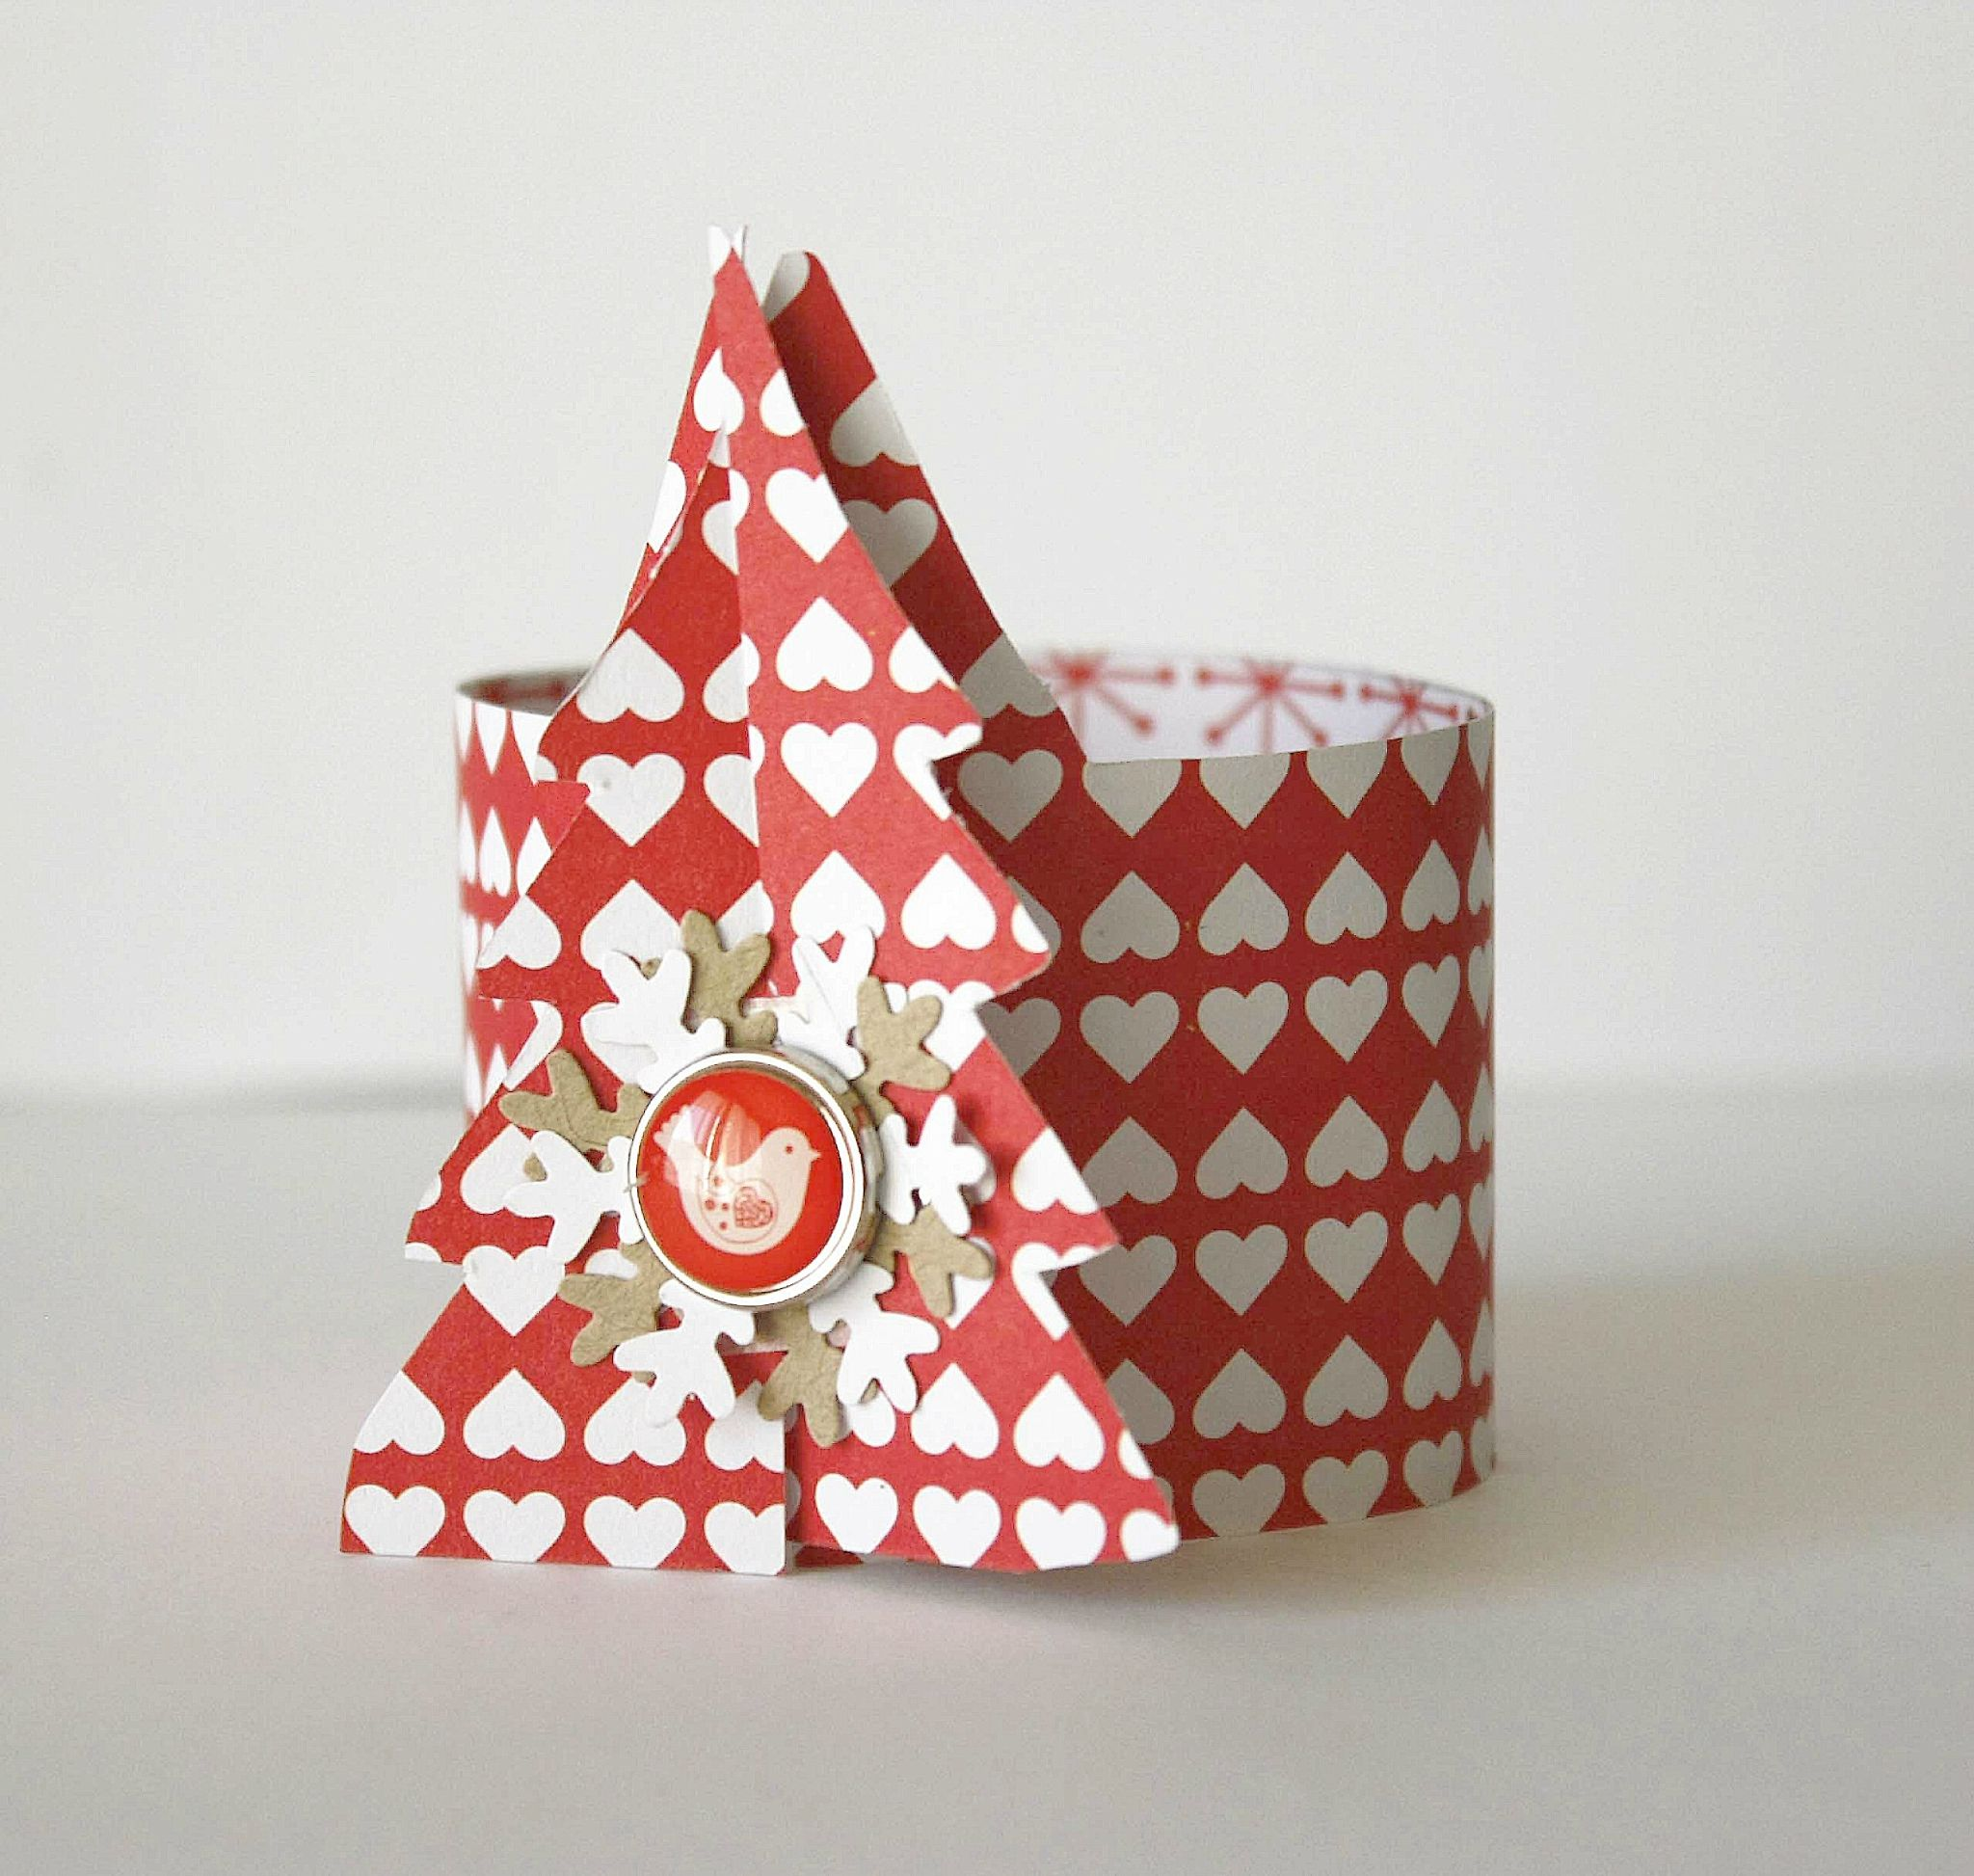 Rond serviette en papier diy no l pinterest envy noel and xmas - Serviette en papier noel ...